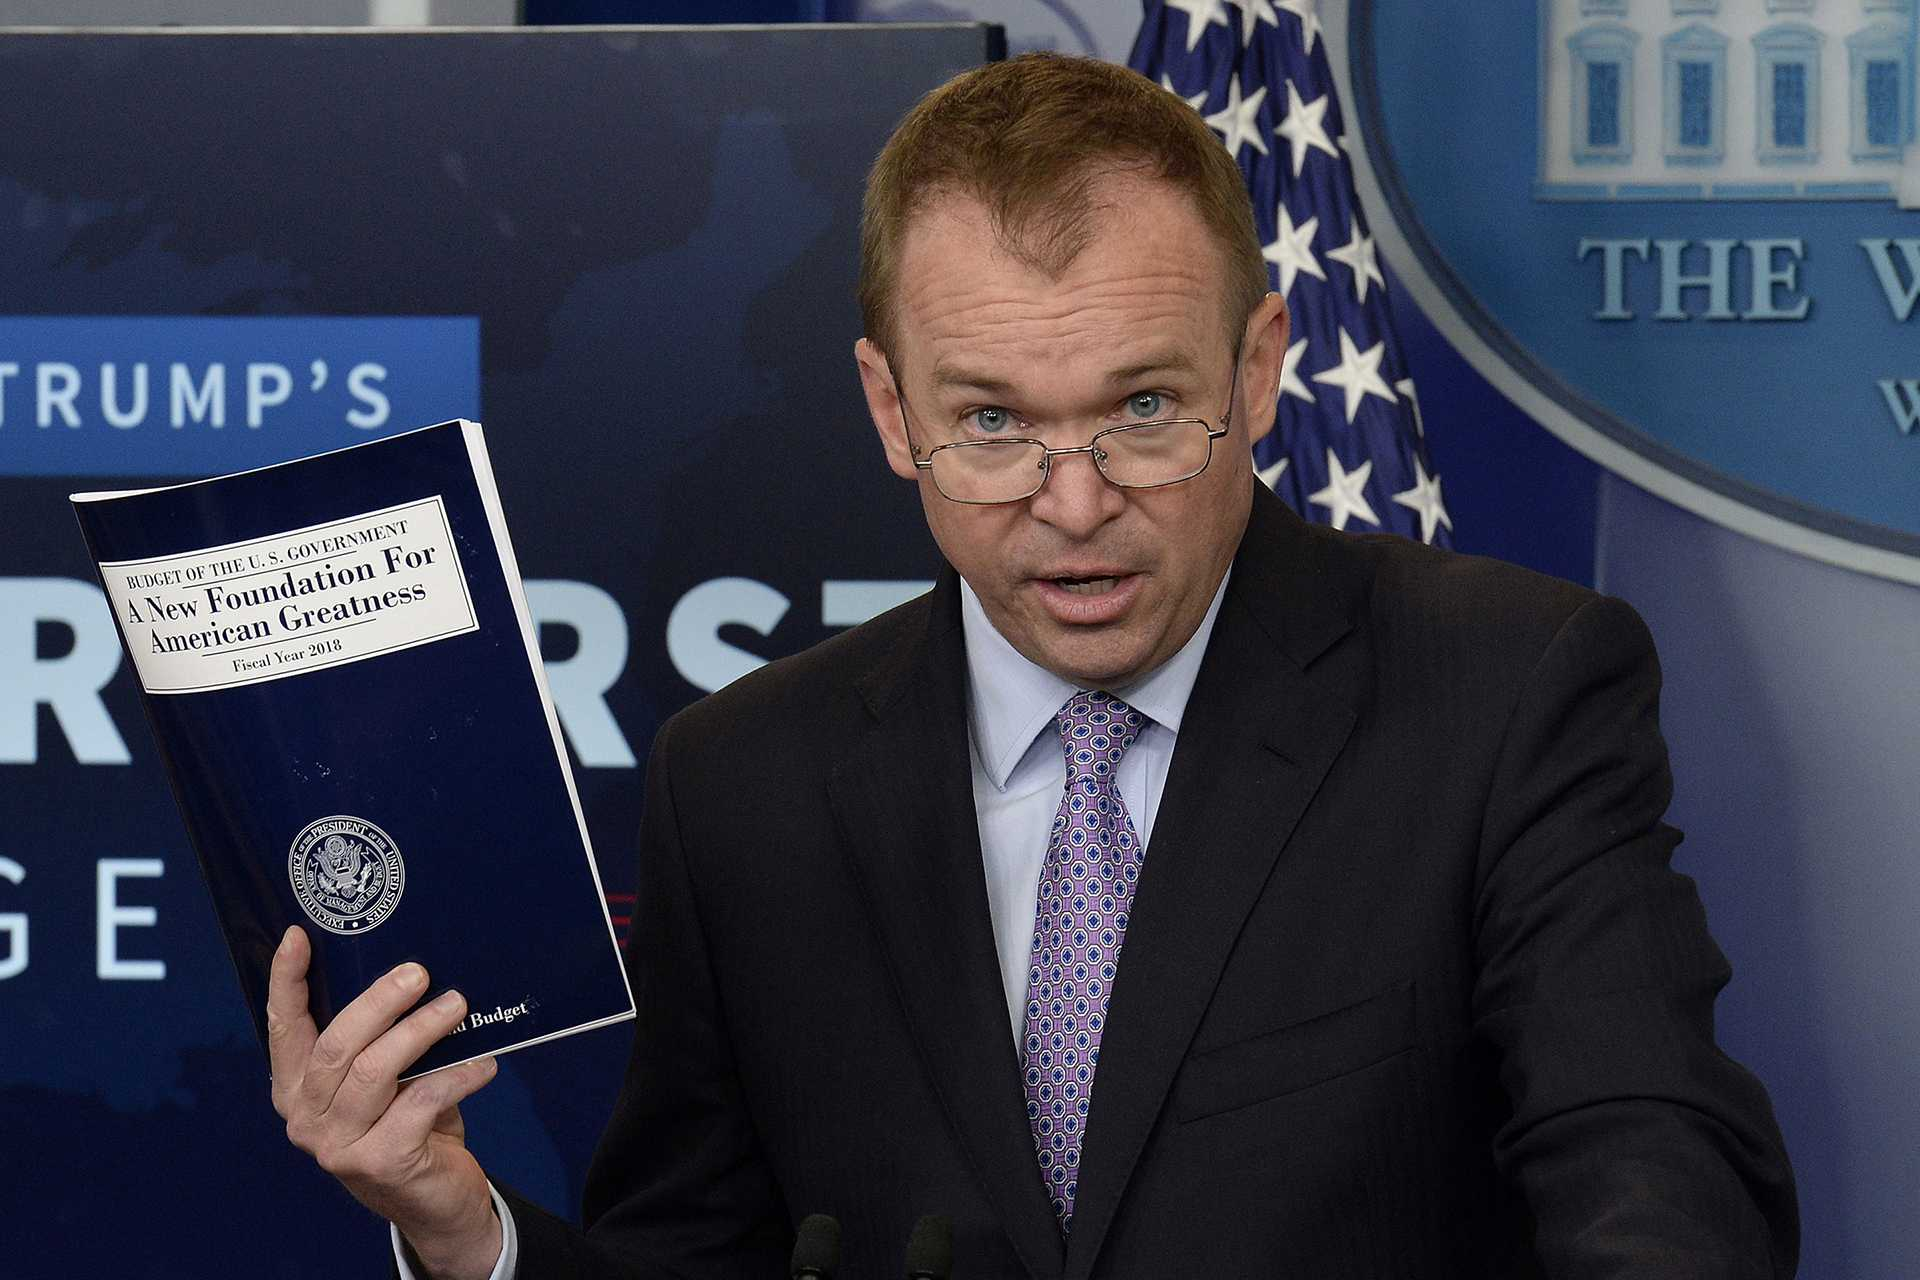 President Donald Trump is widely expected to name Mick Mulvaney, who serves as head of the White House Office of Management and Budget, as interim director of the Consumer Financial Protection Bureau. (Olivier Douliery/Abaca Press/TNS)